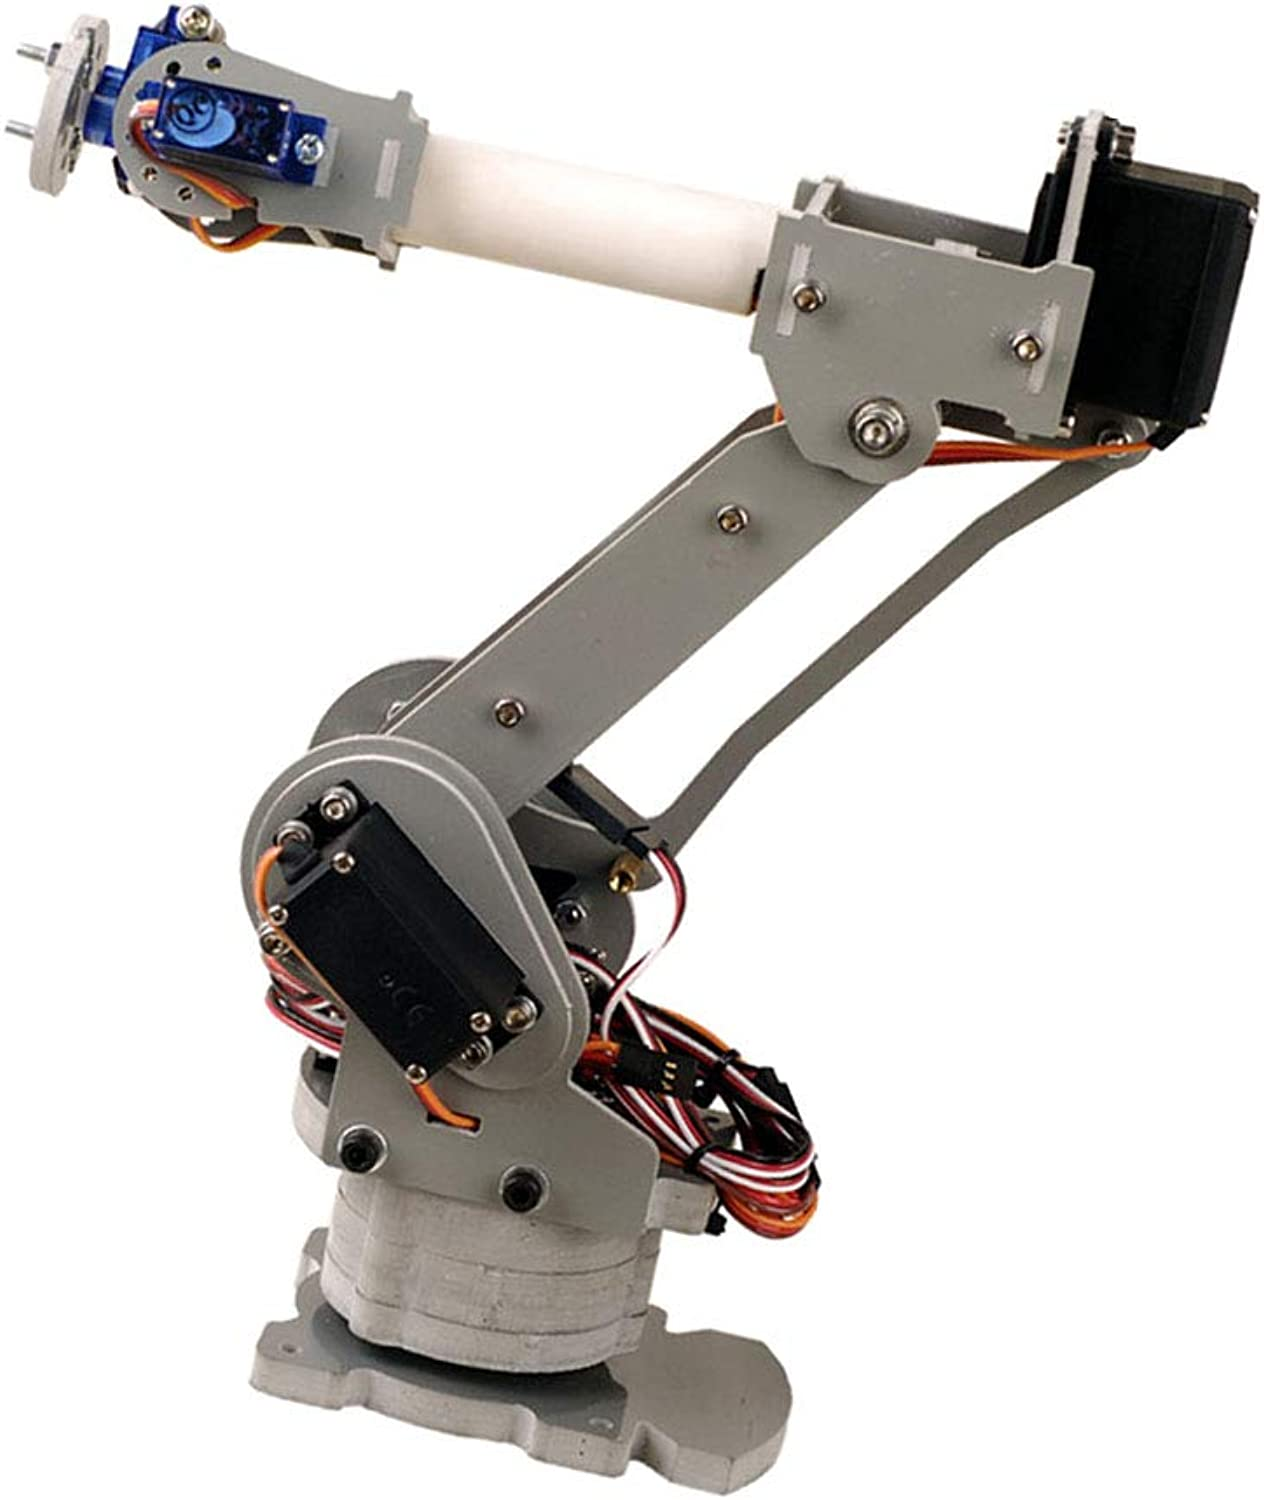 FLAMEER 6 Degree of Freedom Acrylic Robot Arm Claw Edge Kit with Metal Gears MG-996R servo+Arduino controller